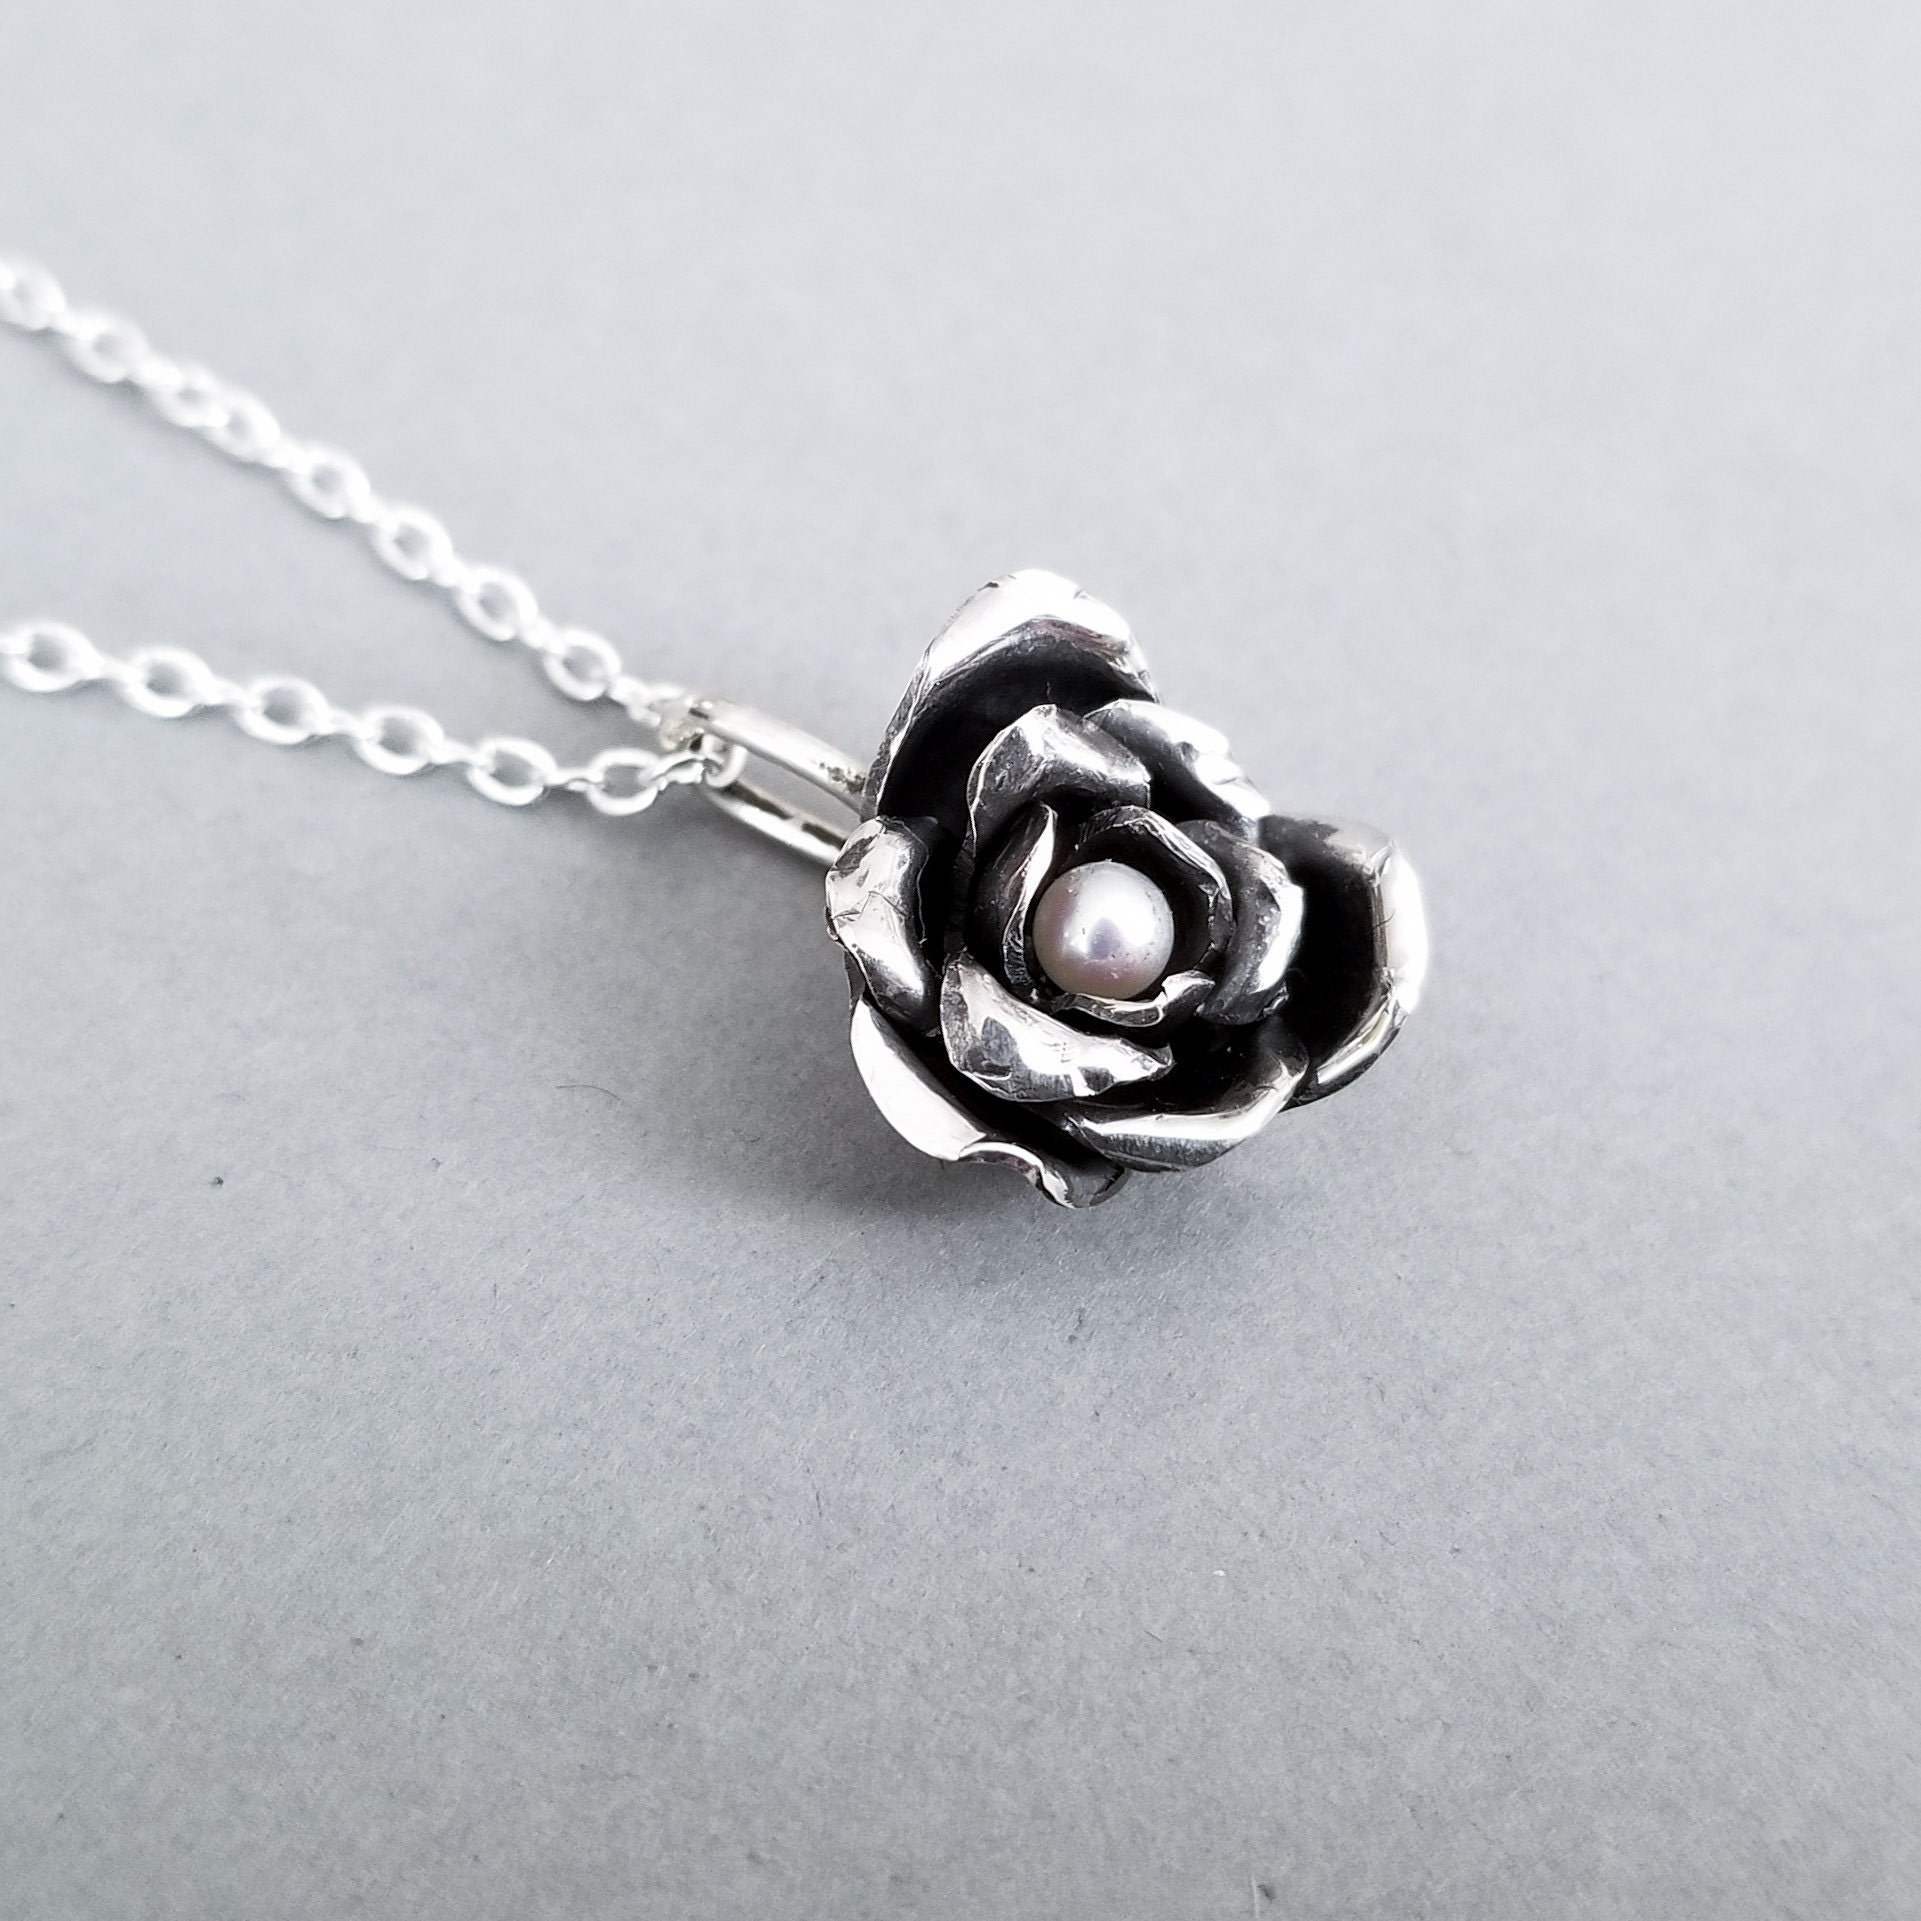 inchoo bijoux valentines day silver rose pearl pendant